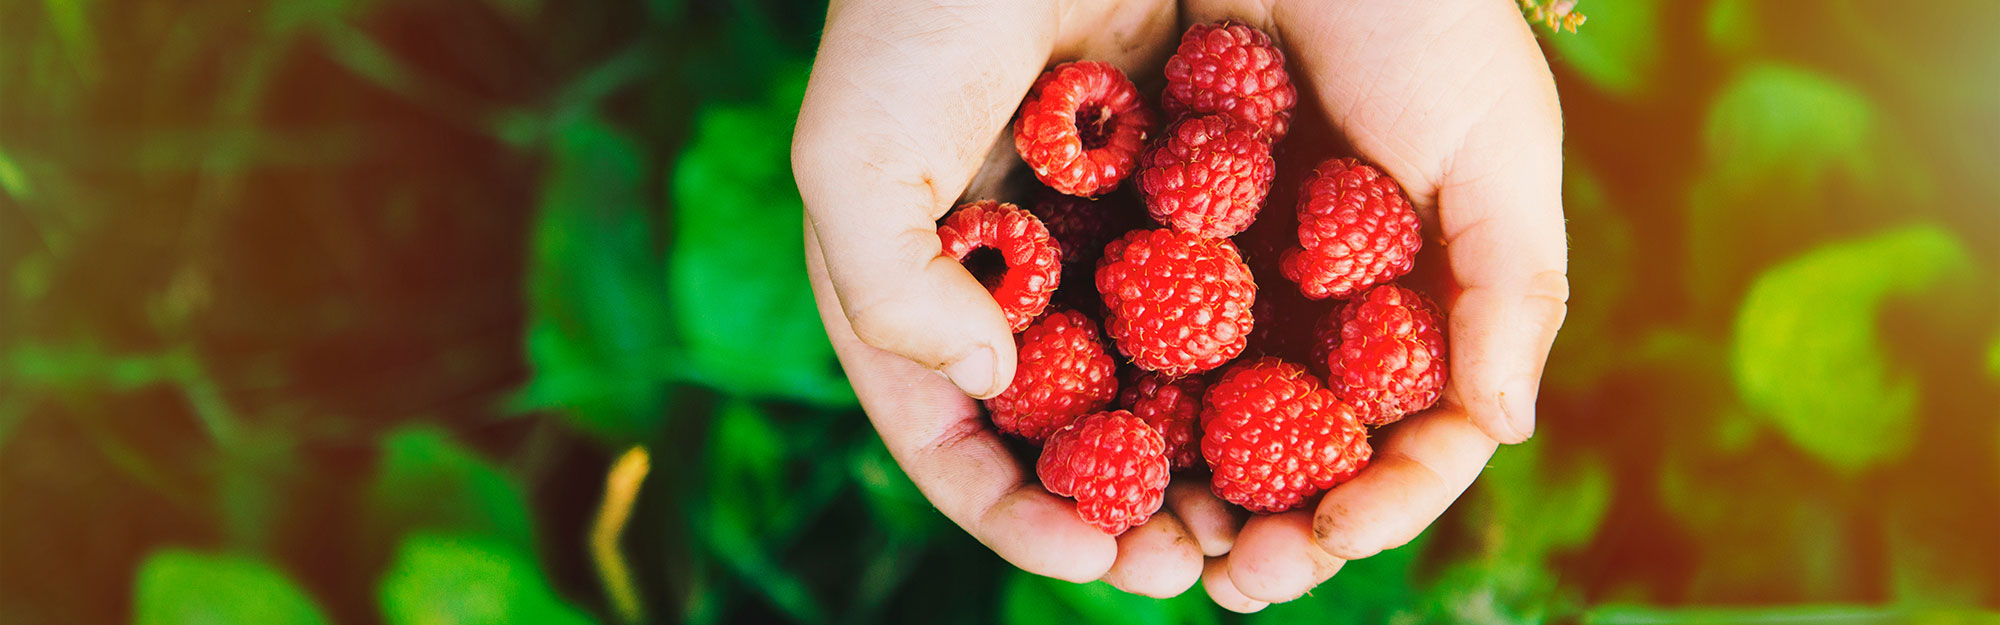 Close up of hands holding raspberries.